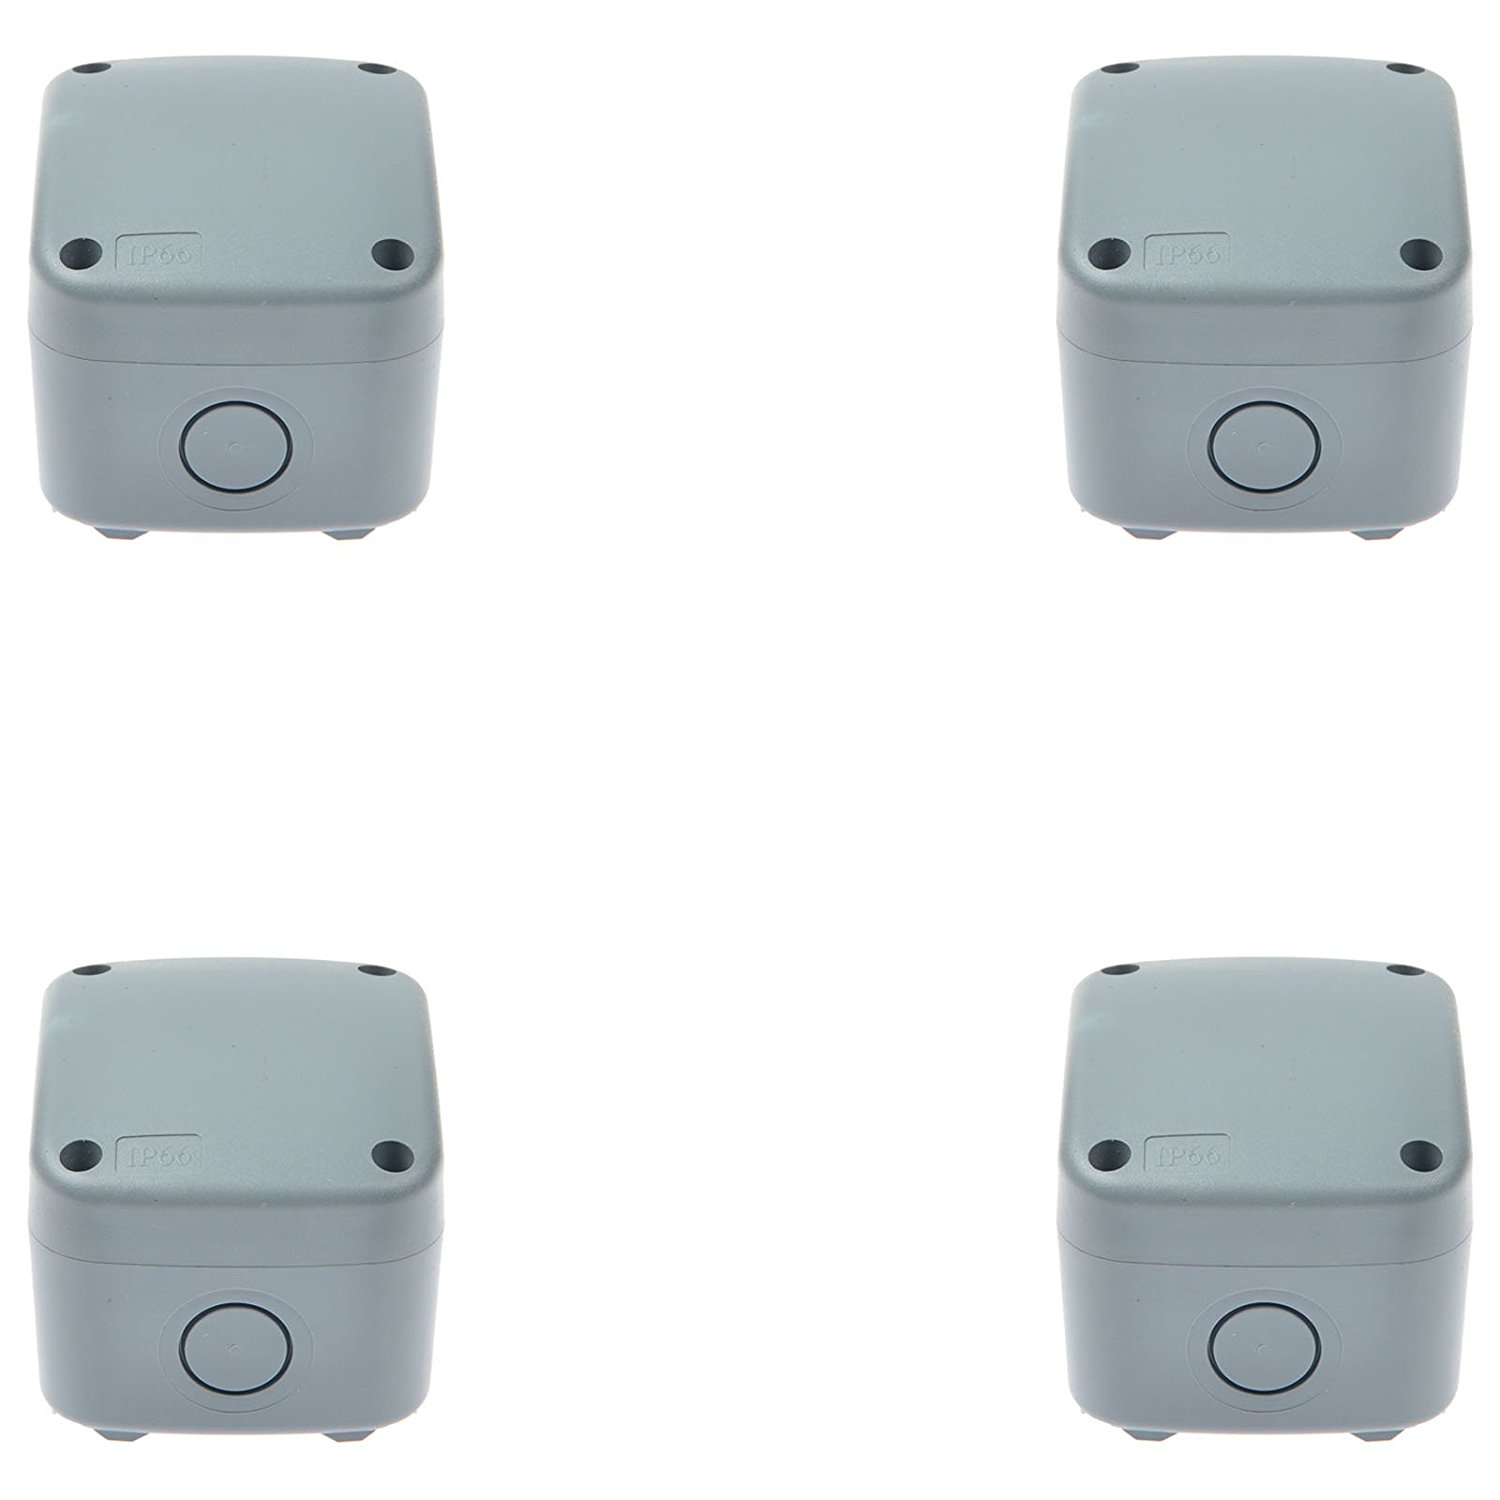 GREENCYCLE 4 Pack IP66 Rated Plastic Weatherproof Junction Box Fit for Outdoor Use, 867462mm